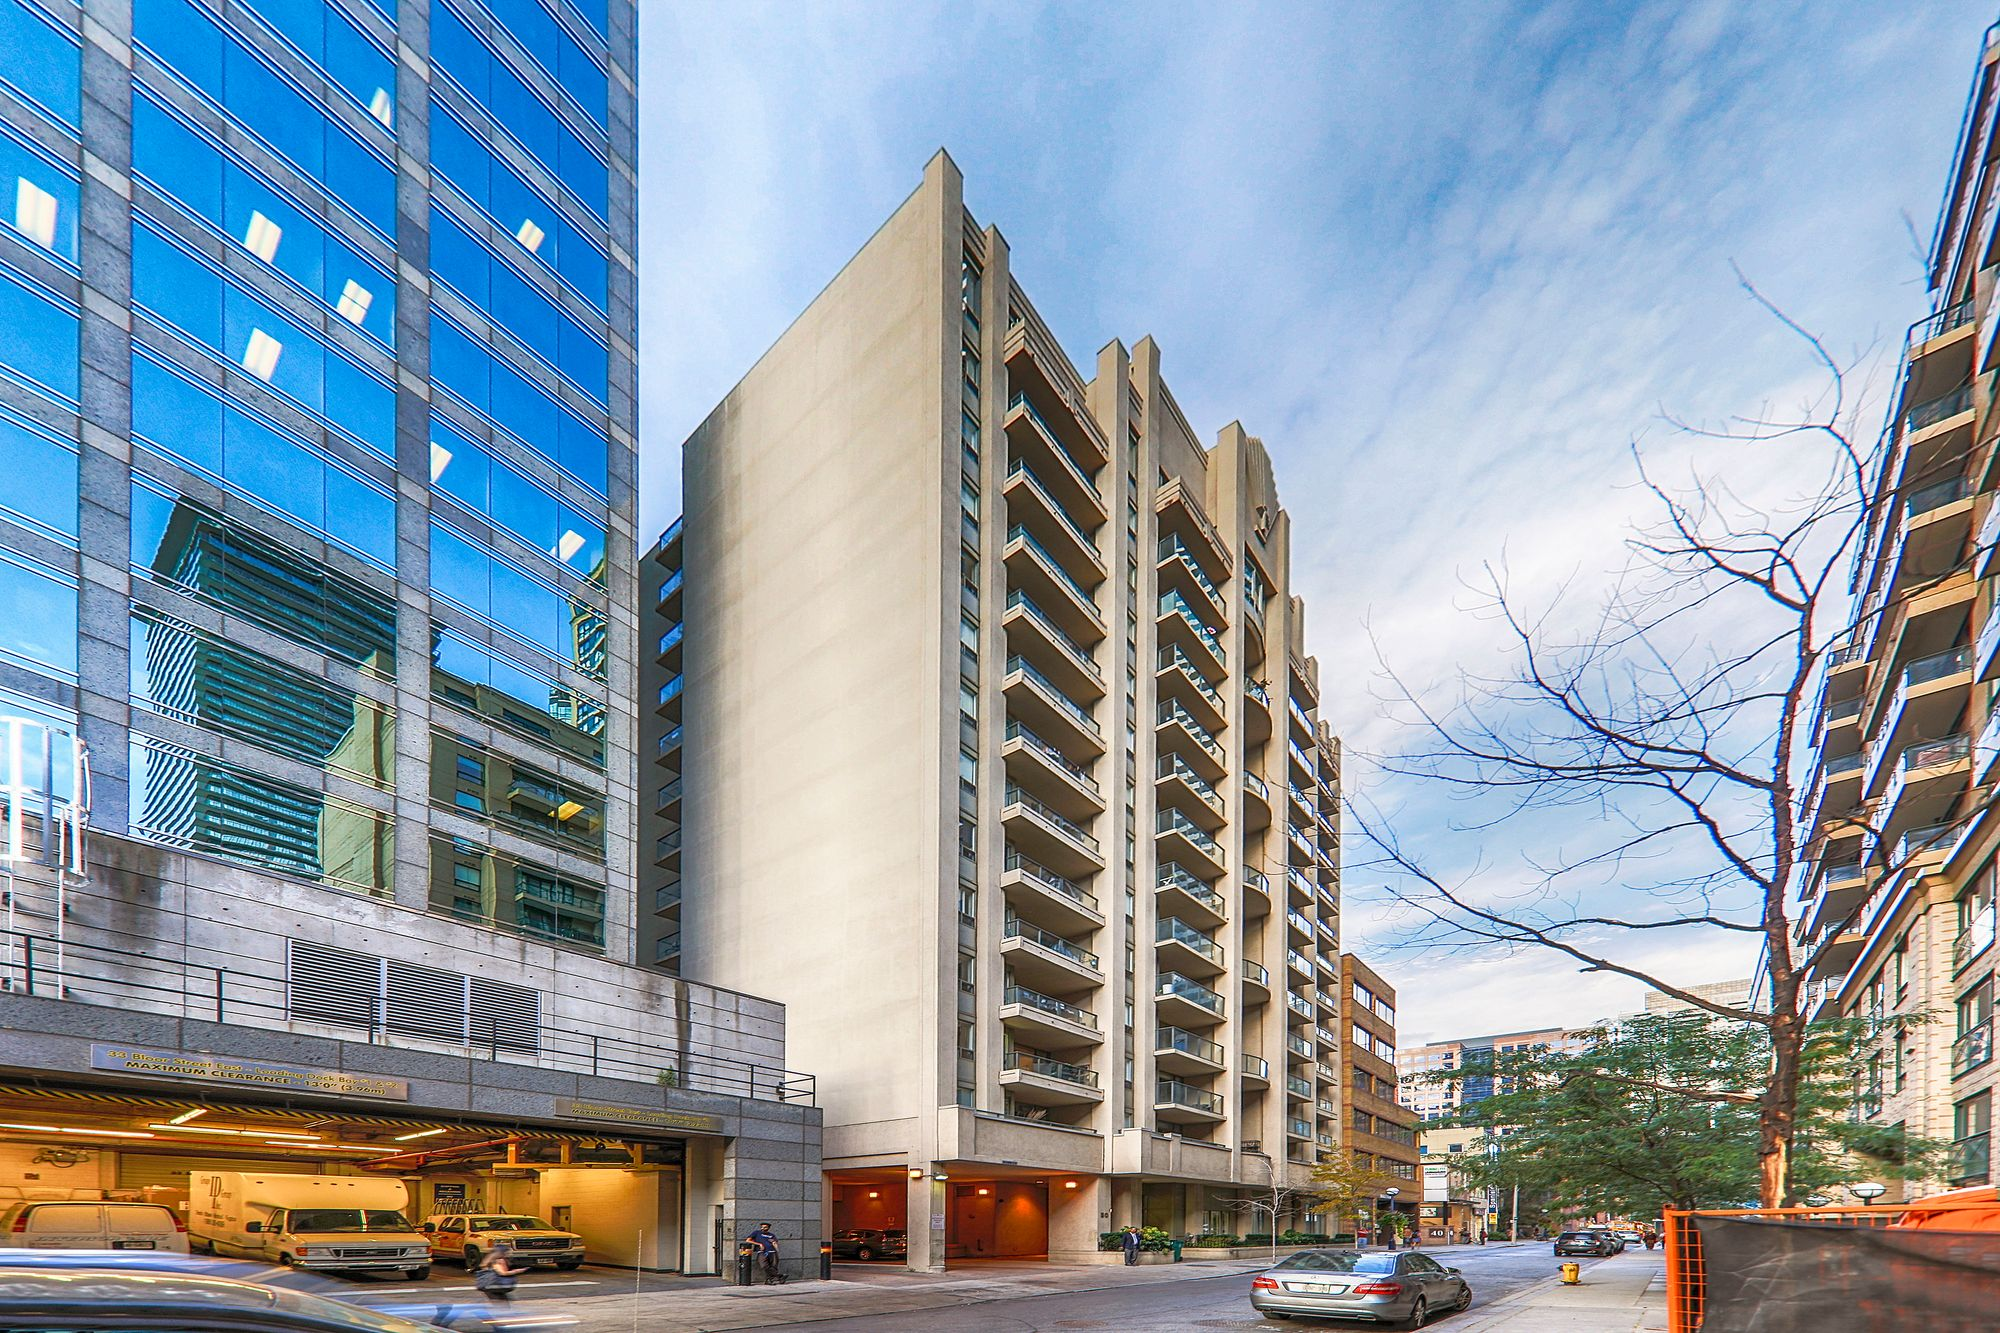 Tiffany Terrace at 30 Hayden St. This condo is located in  Downtown, Toronto - image #1 of 4 by Strata.ca